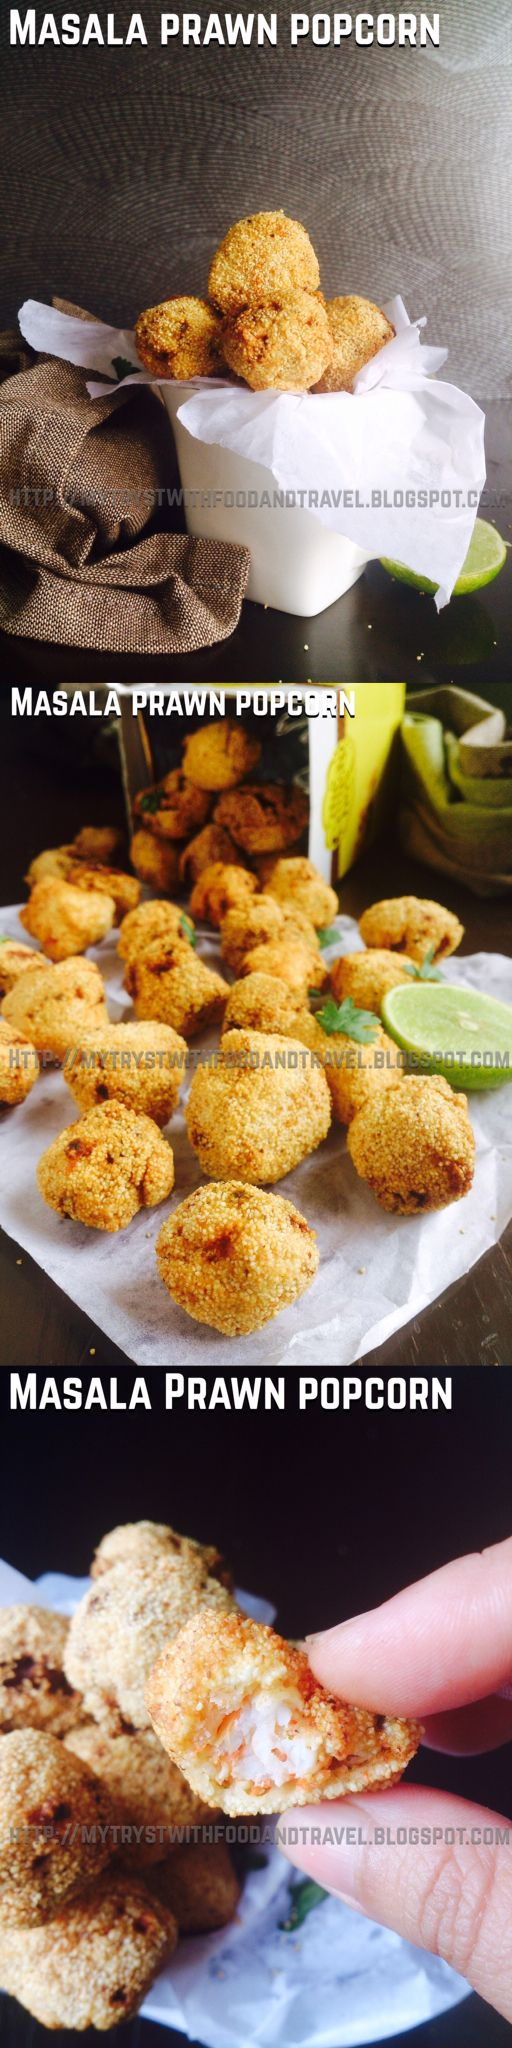 Masala Prawn Popcorn the perfect tongue  tickler of an appetizer to pep up those kiddie parties and the upcoming super bowl.